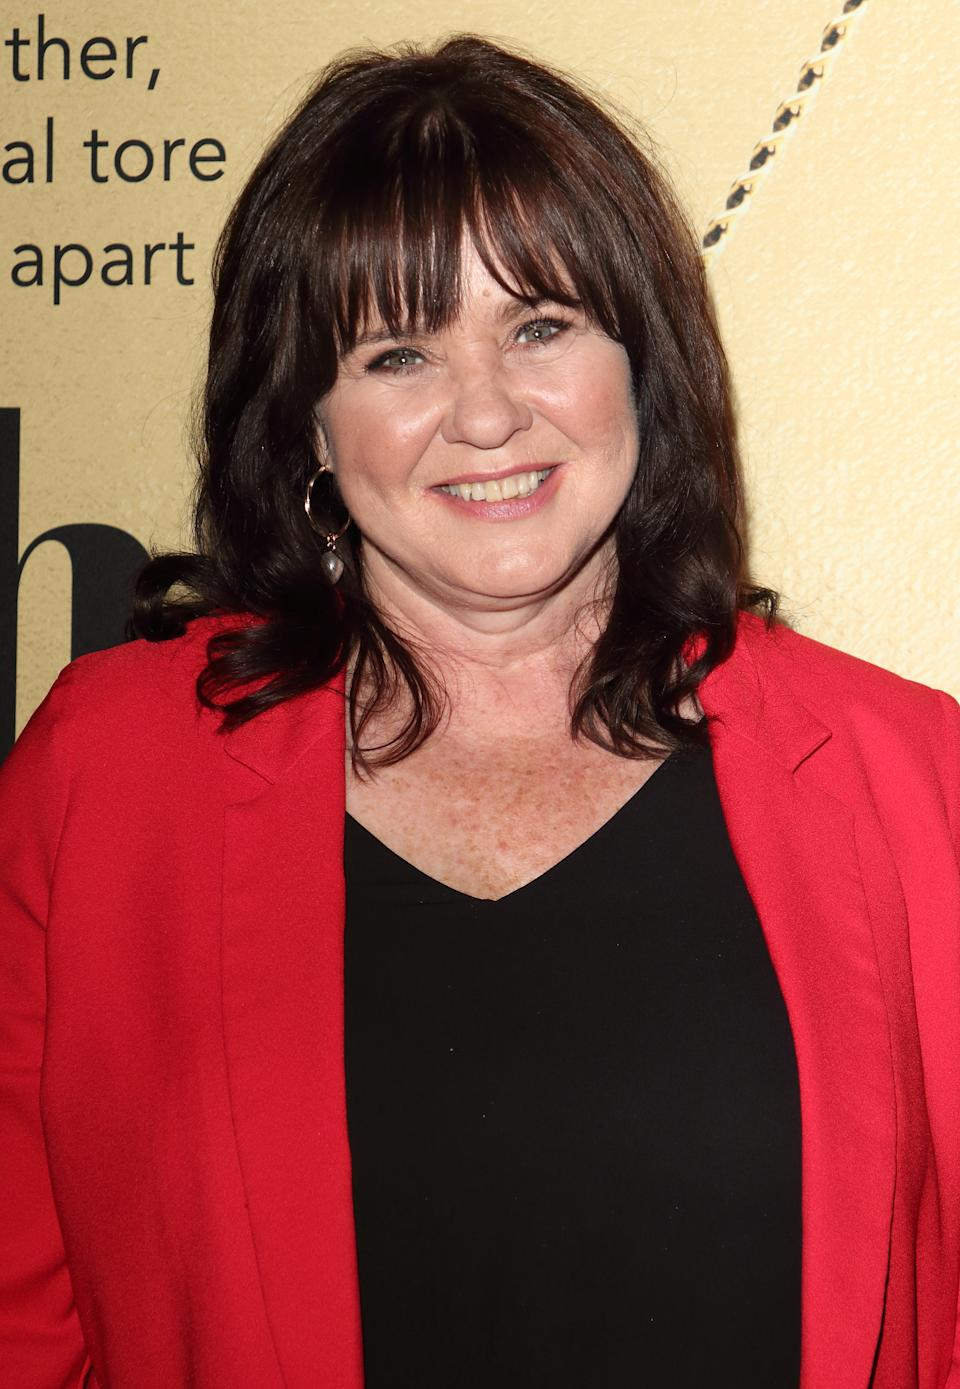 LONDON, UNITED KINGDOM - 2019/07/02: Coleen Nolan at The Thunder Girls book launch party at The Court, Kingly Street. (Photo by Keith Mayhew/SOPA Images/LightRocket via Getty Images)